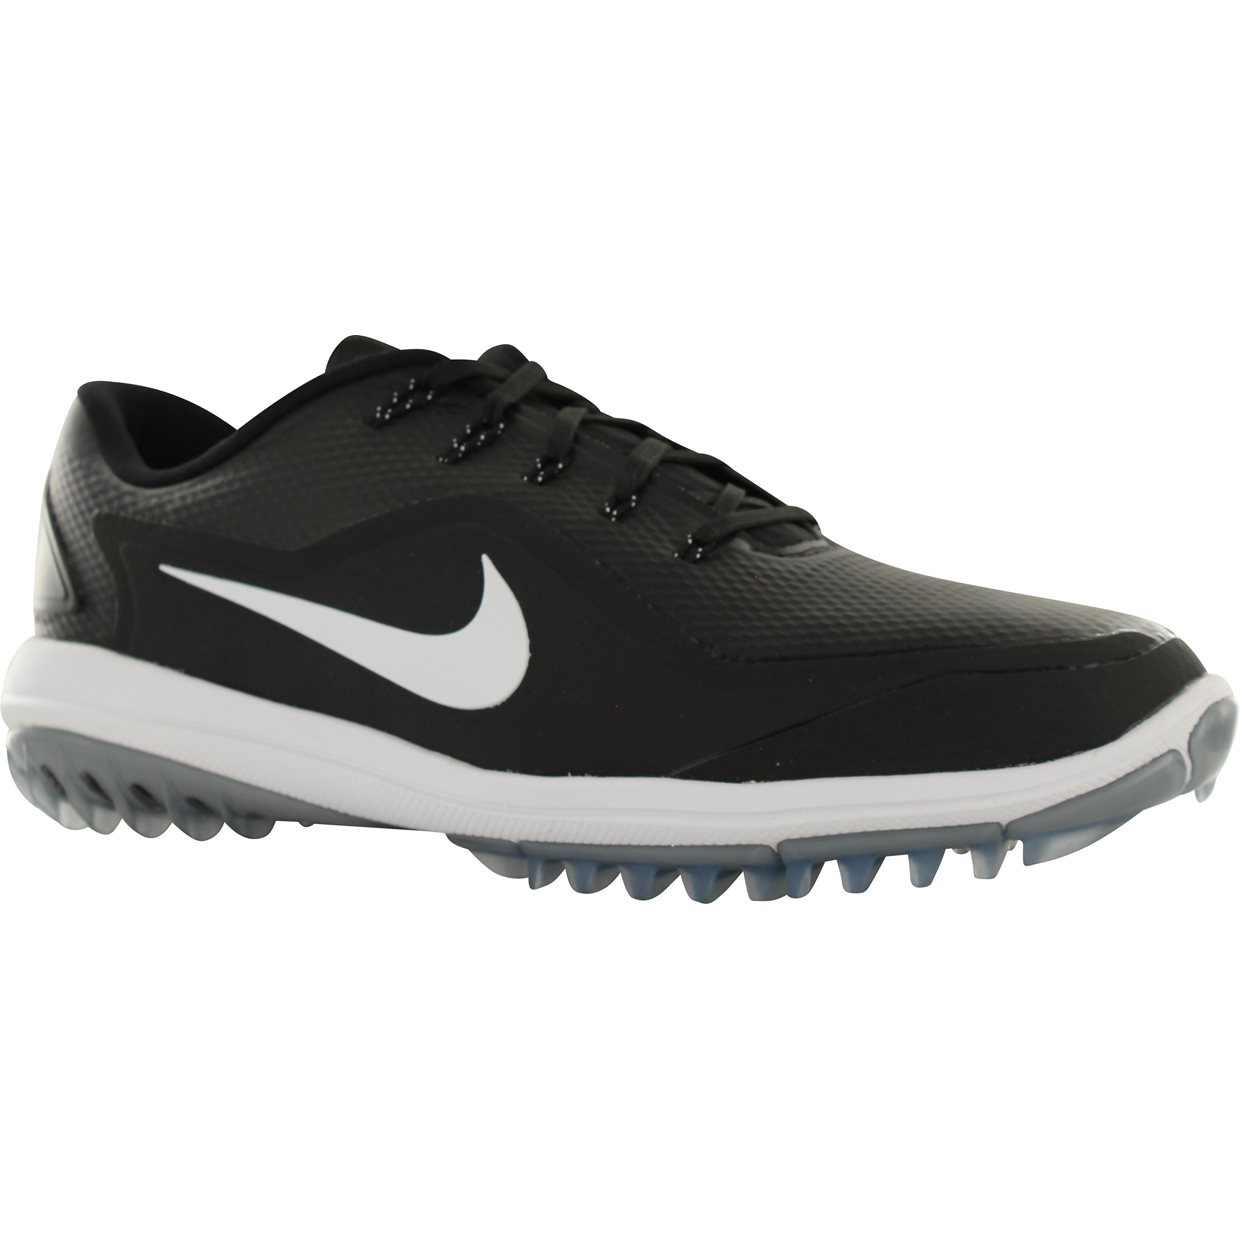 cae5f0c8a3462 Nike Lunar Control Vapor 2 Spikeless Shoes. Drag 360 Left or Right to View.  Alternate Product Image View 1 ...